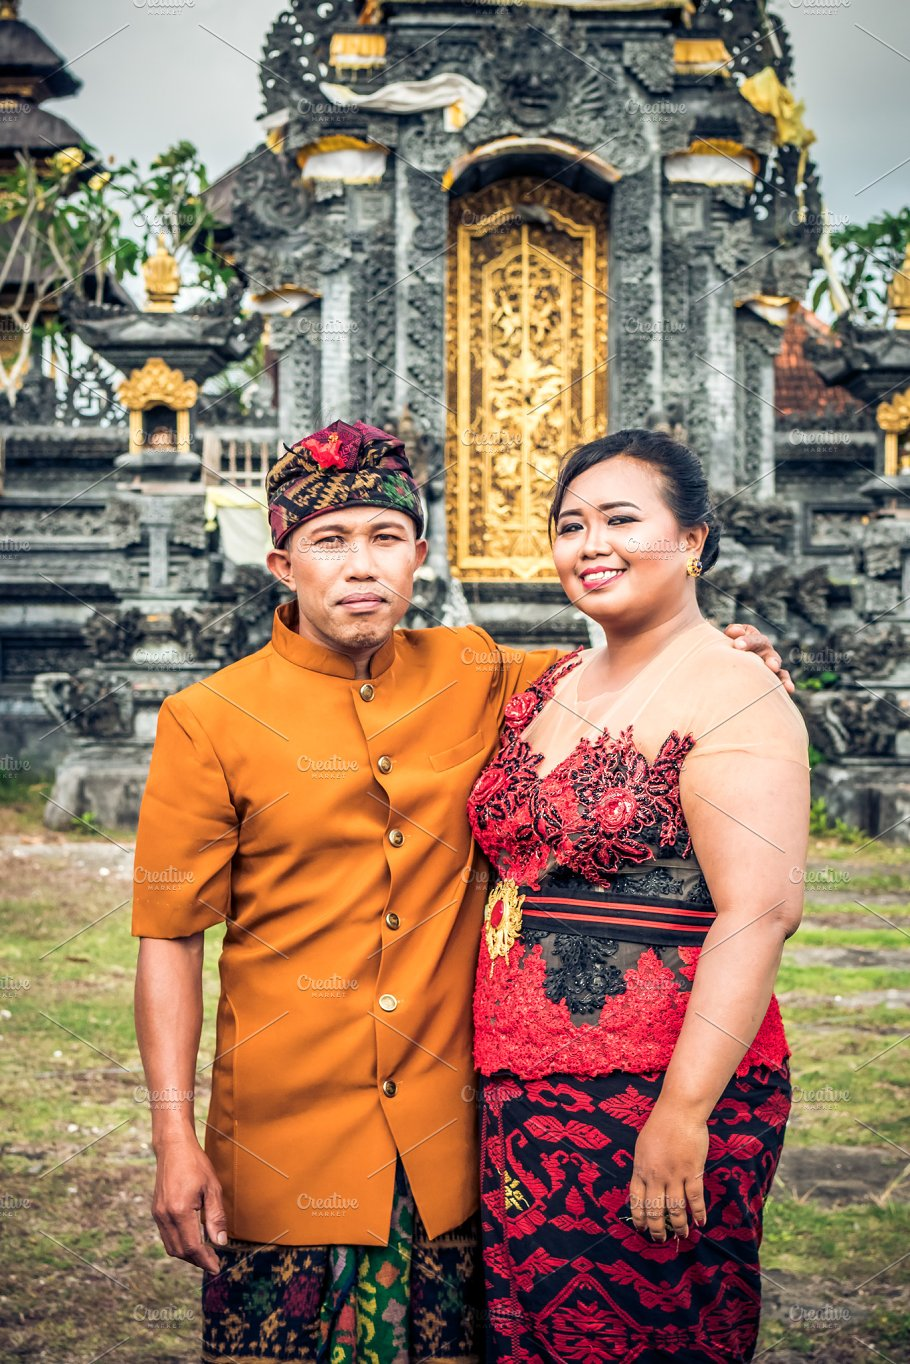 Lovely Honeymoon Balinese Couple In Traditional Clothes Together At Market The Temple Bali Island